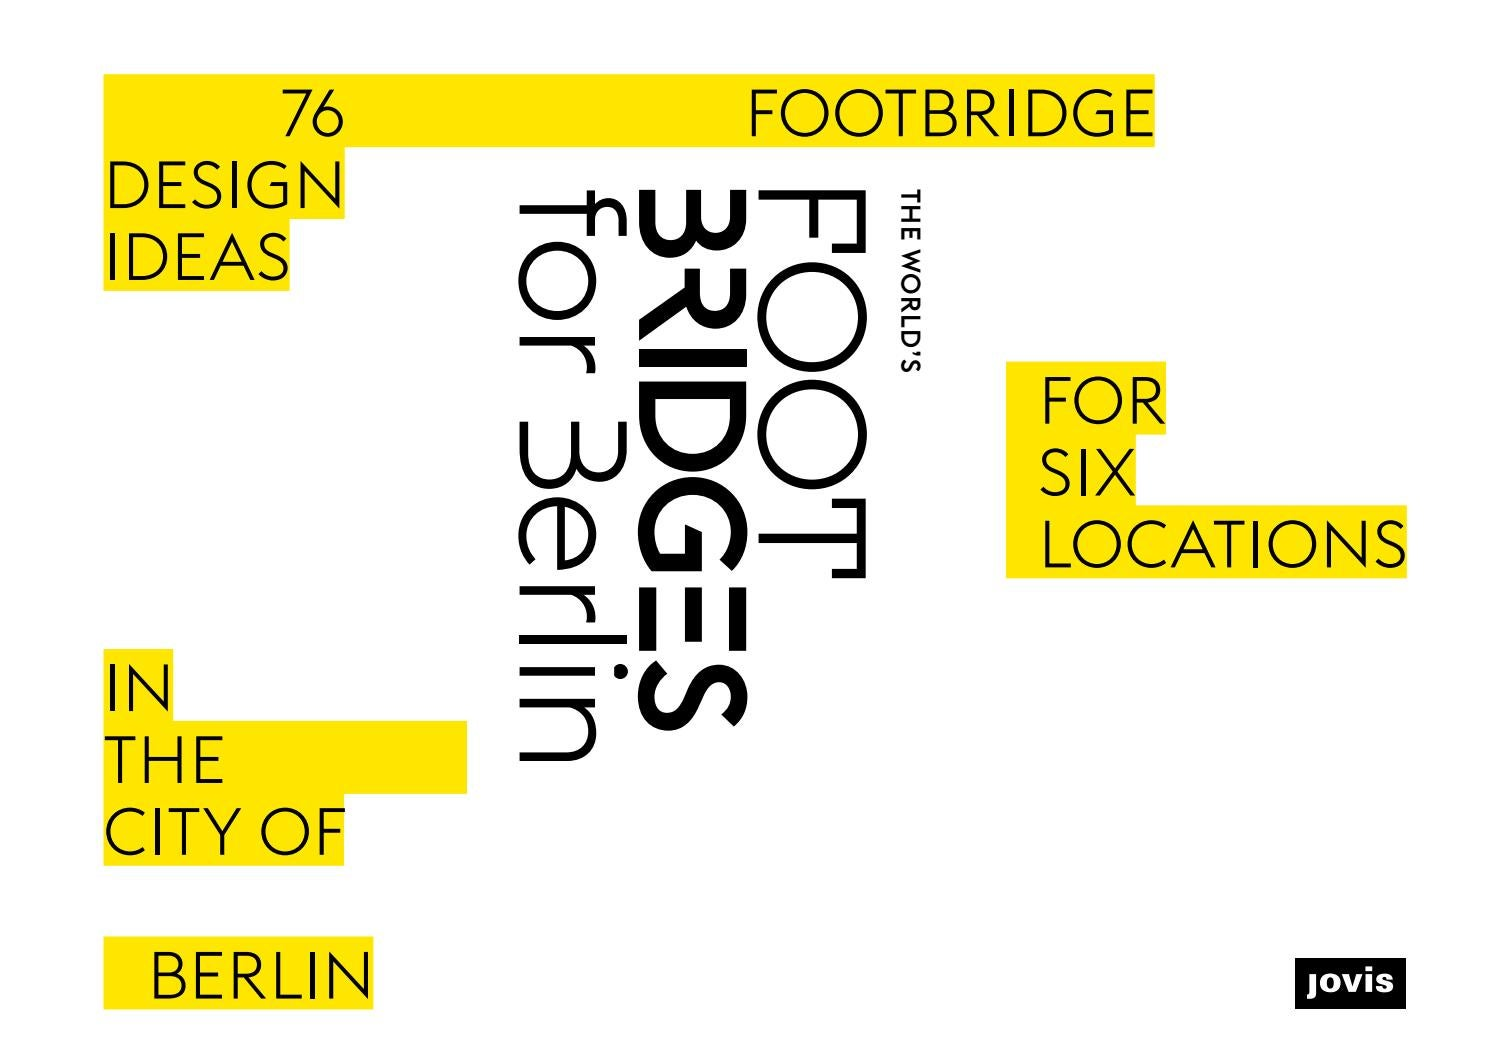 The World's Footbridges for Berlin by DETAIL - issuu